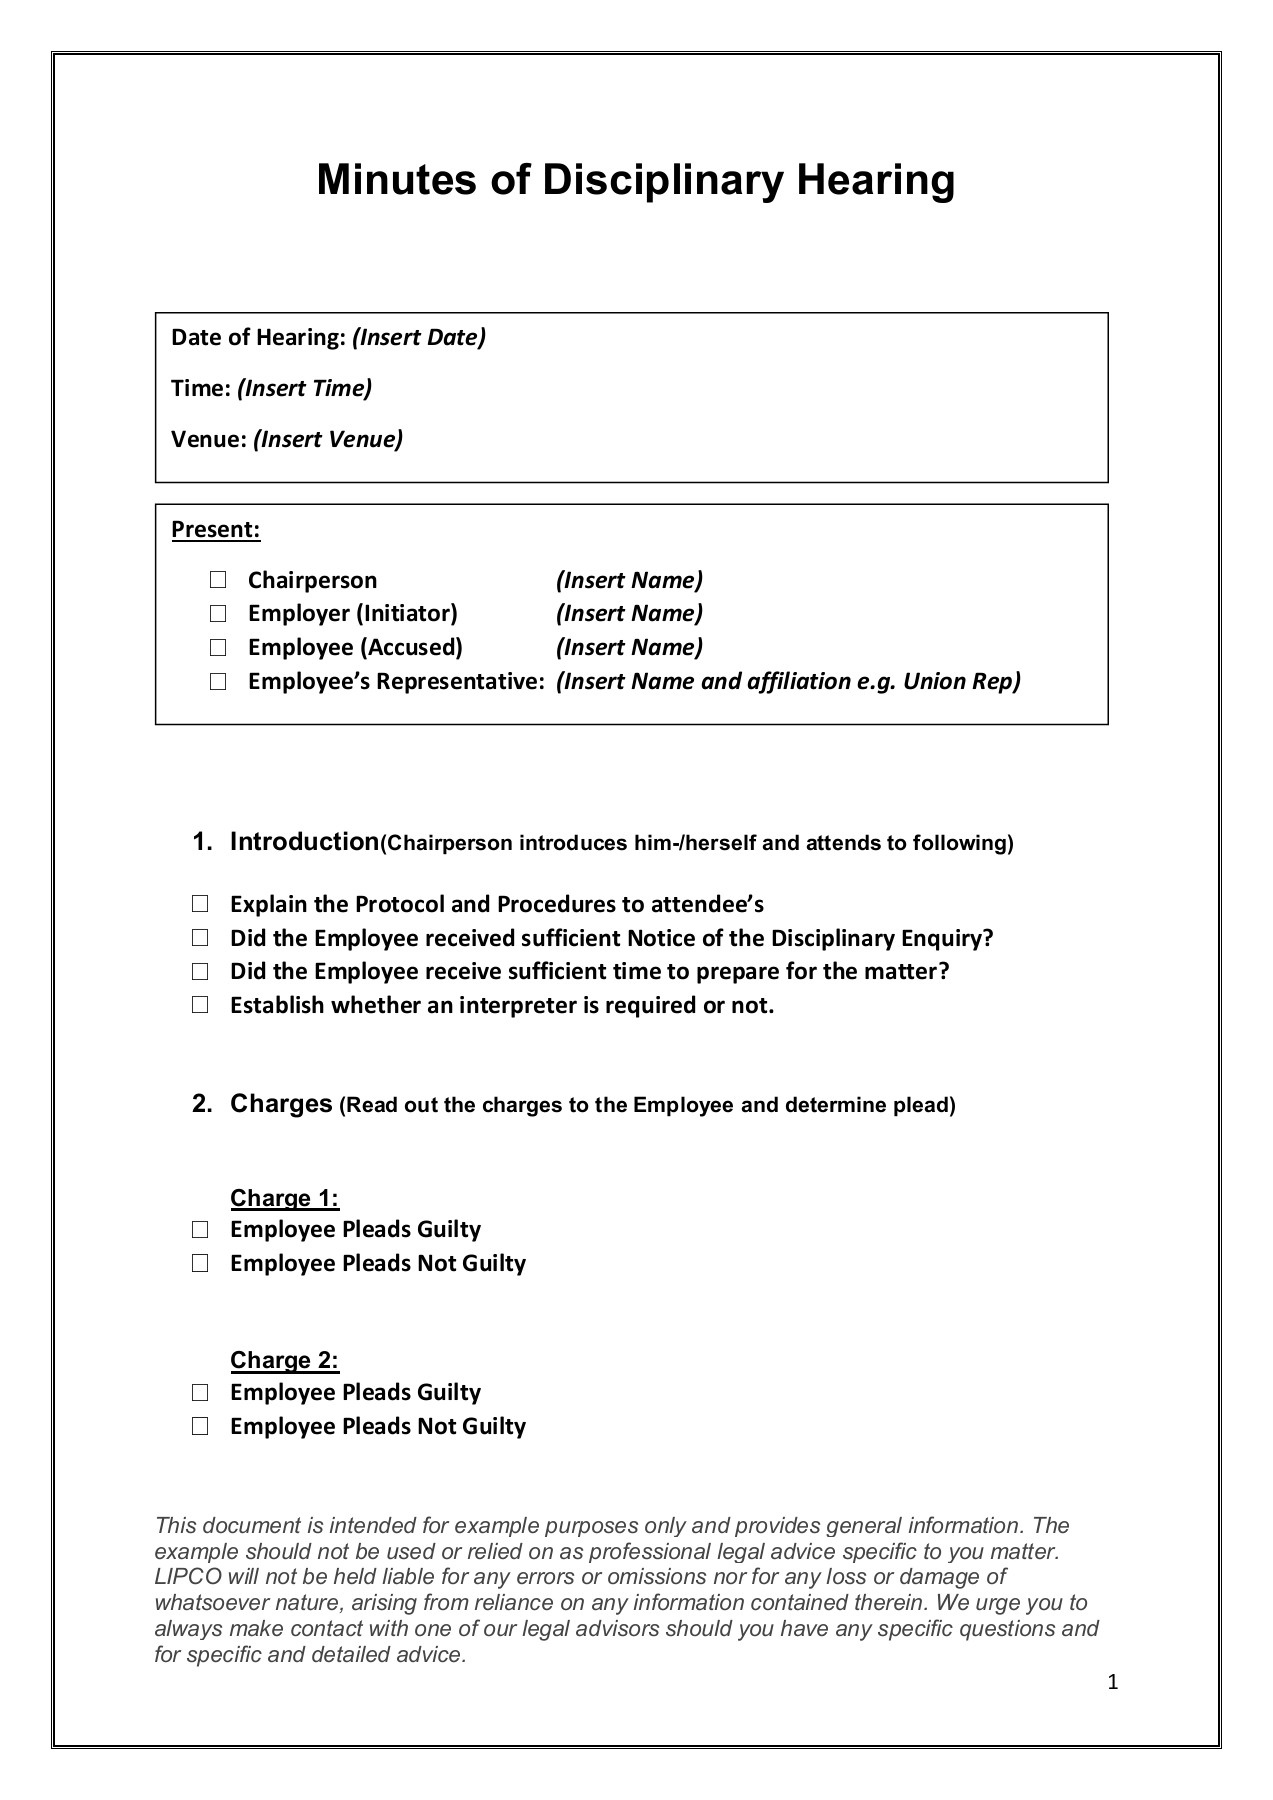 Disciplinary Meeting Minutes Template